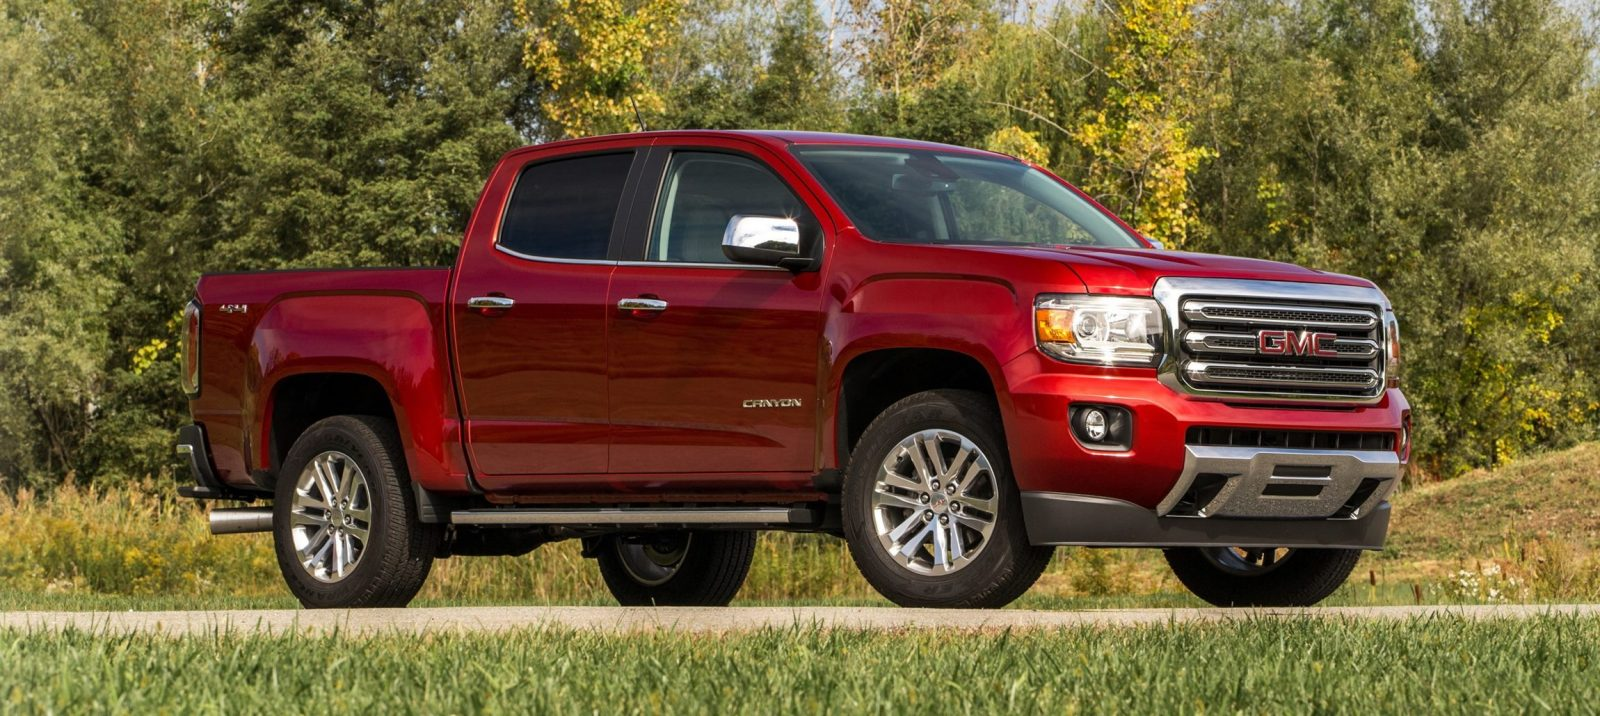 drive review 2016 gmc canyon duramax slt 4wd by ben. Black Bedroom Furniture Sets. Home Design Ideas